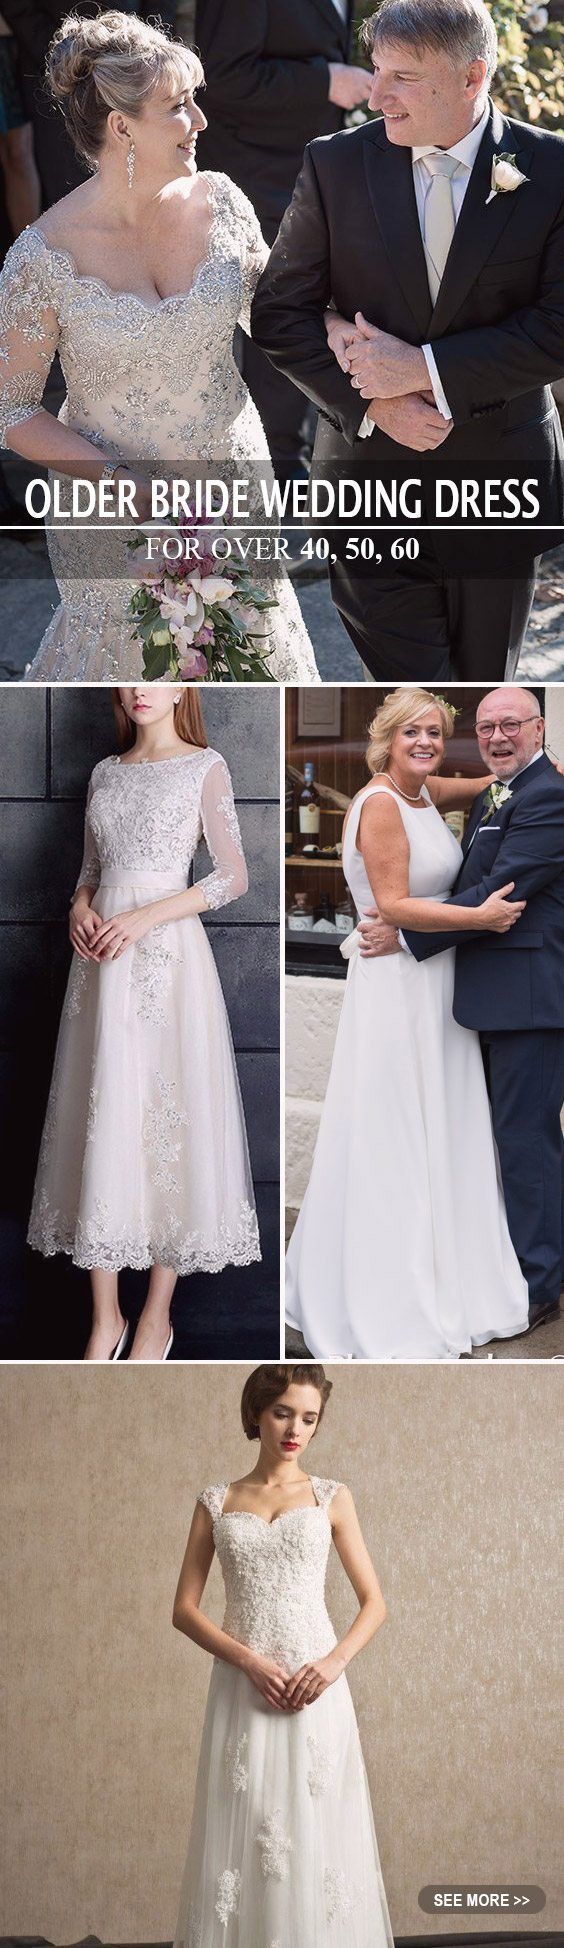 Wedding Dresses for Older Brides over 50